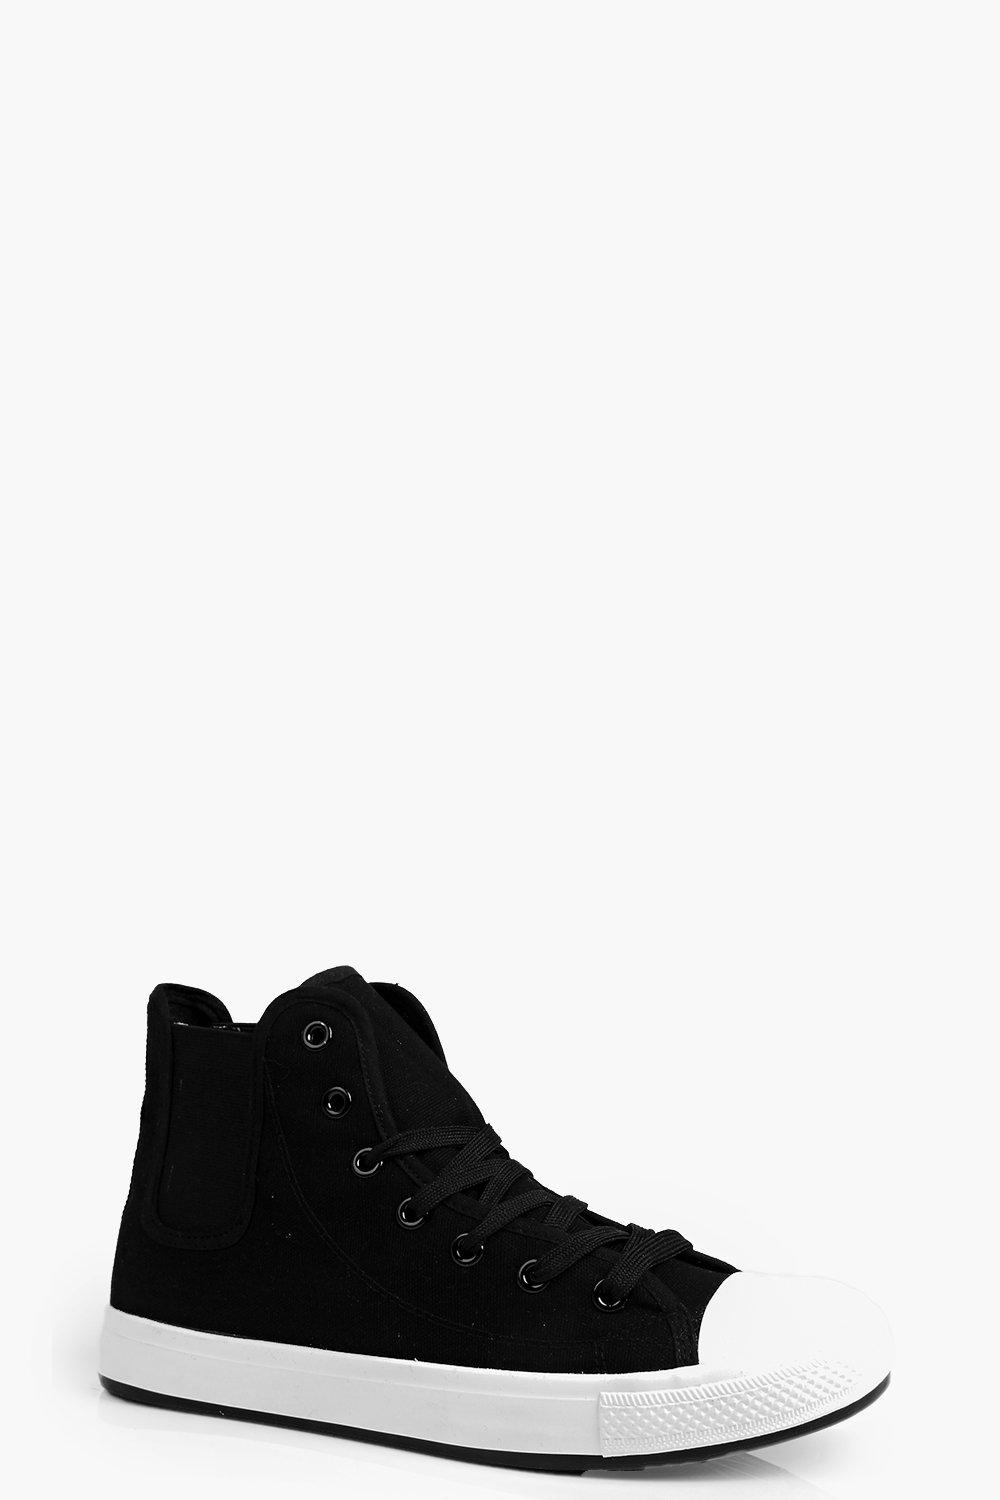 Megan Lace Up Canvas Hi-Top